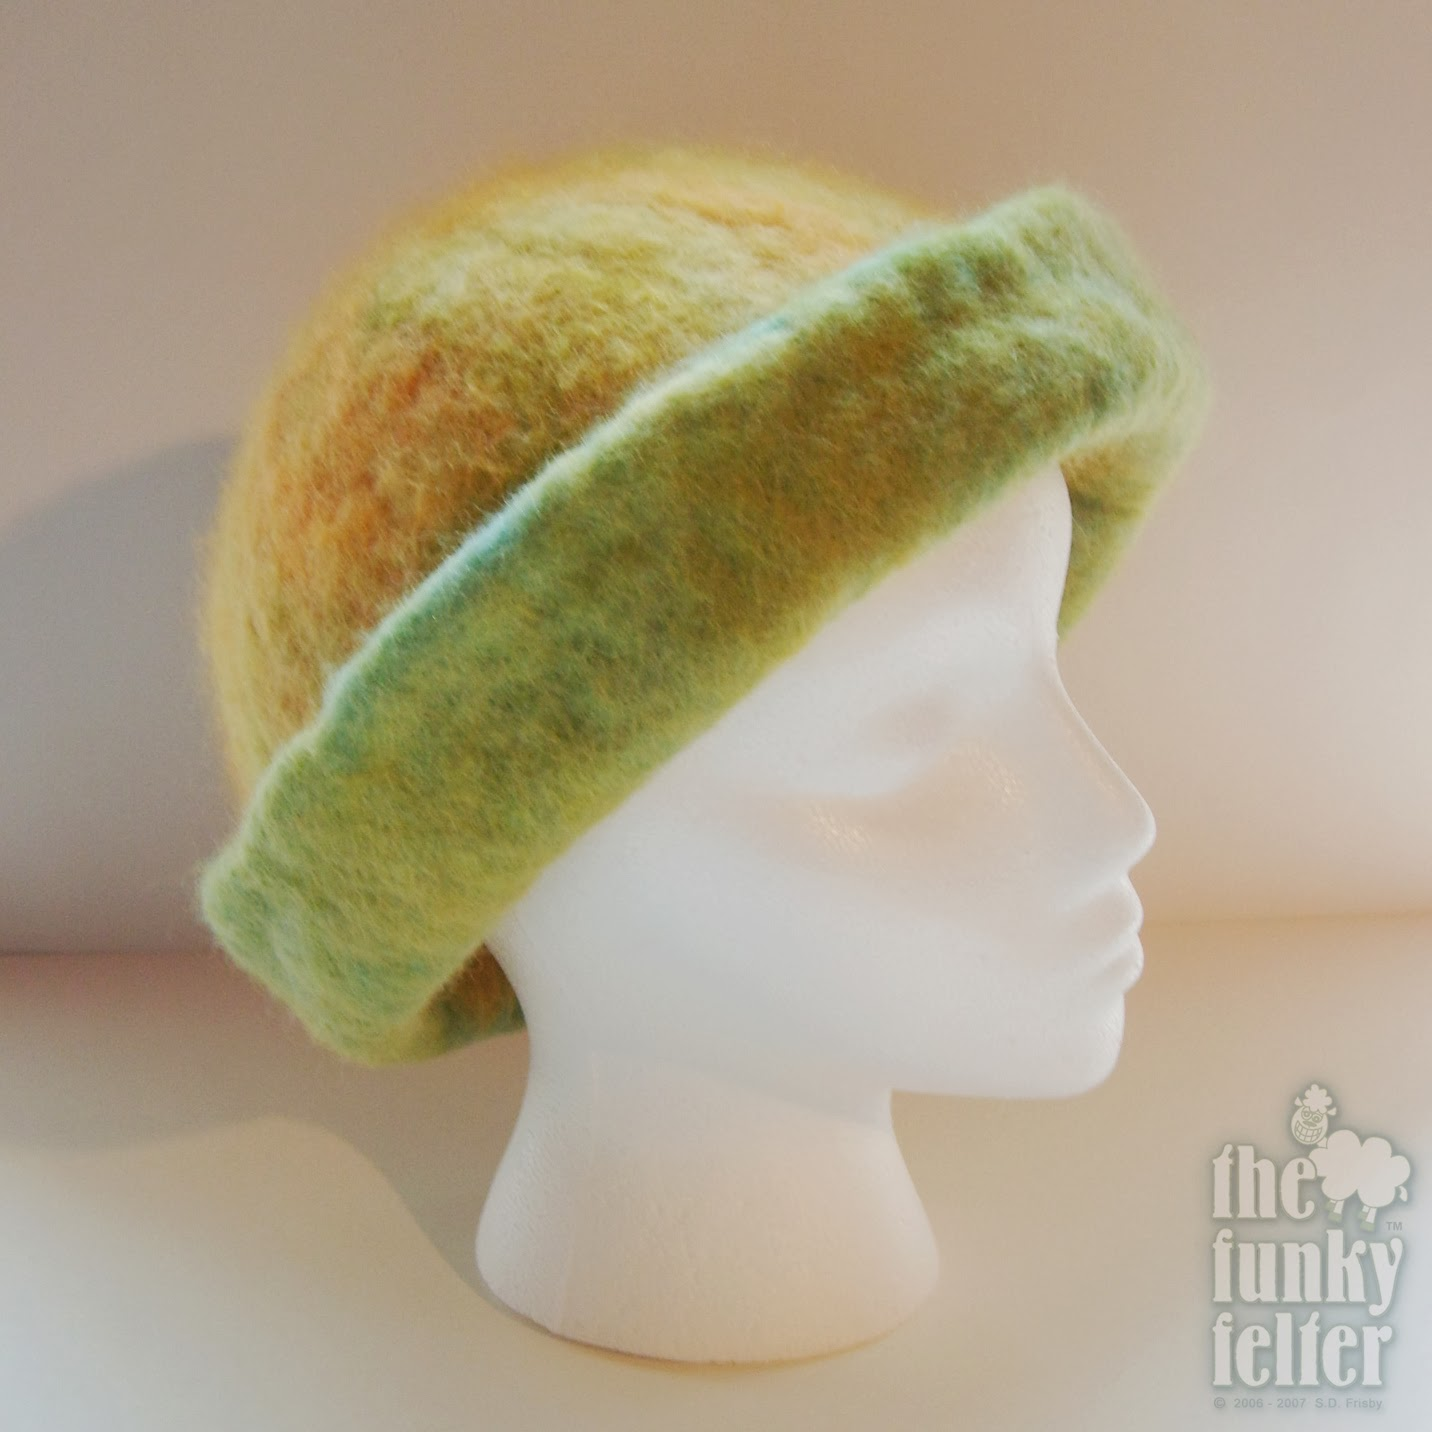 The Funky Felter  How To Make a Felted Hat - A Tutorial for Combined ... 7490ebfbc9e